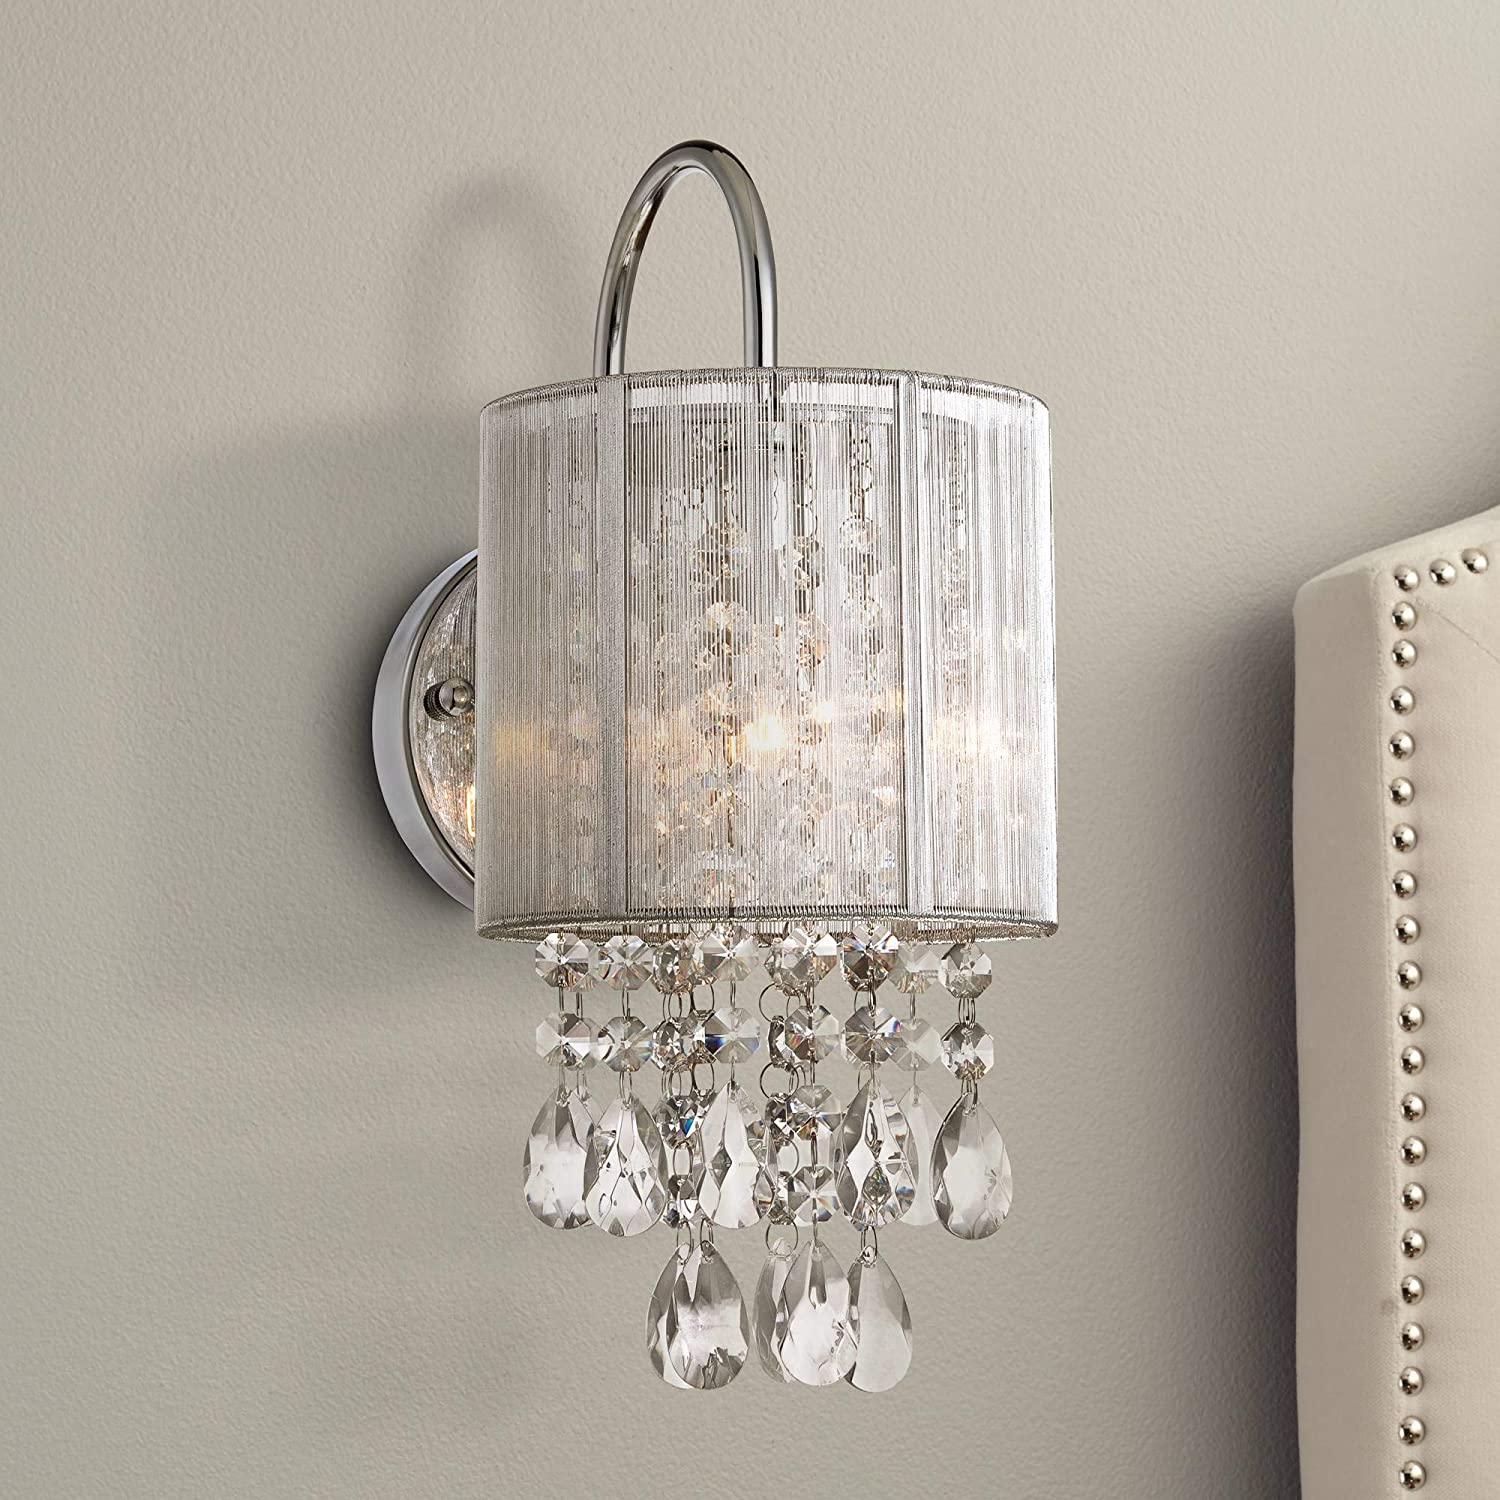 Silver line modern wall light chrome 12 crystal dangle sconce for bathroom bedroom hallway possini euro design